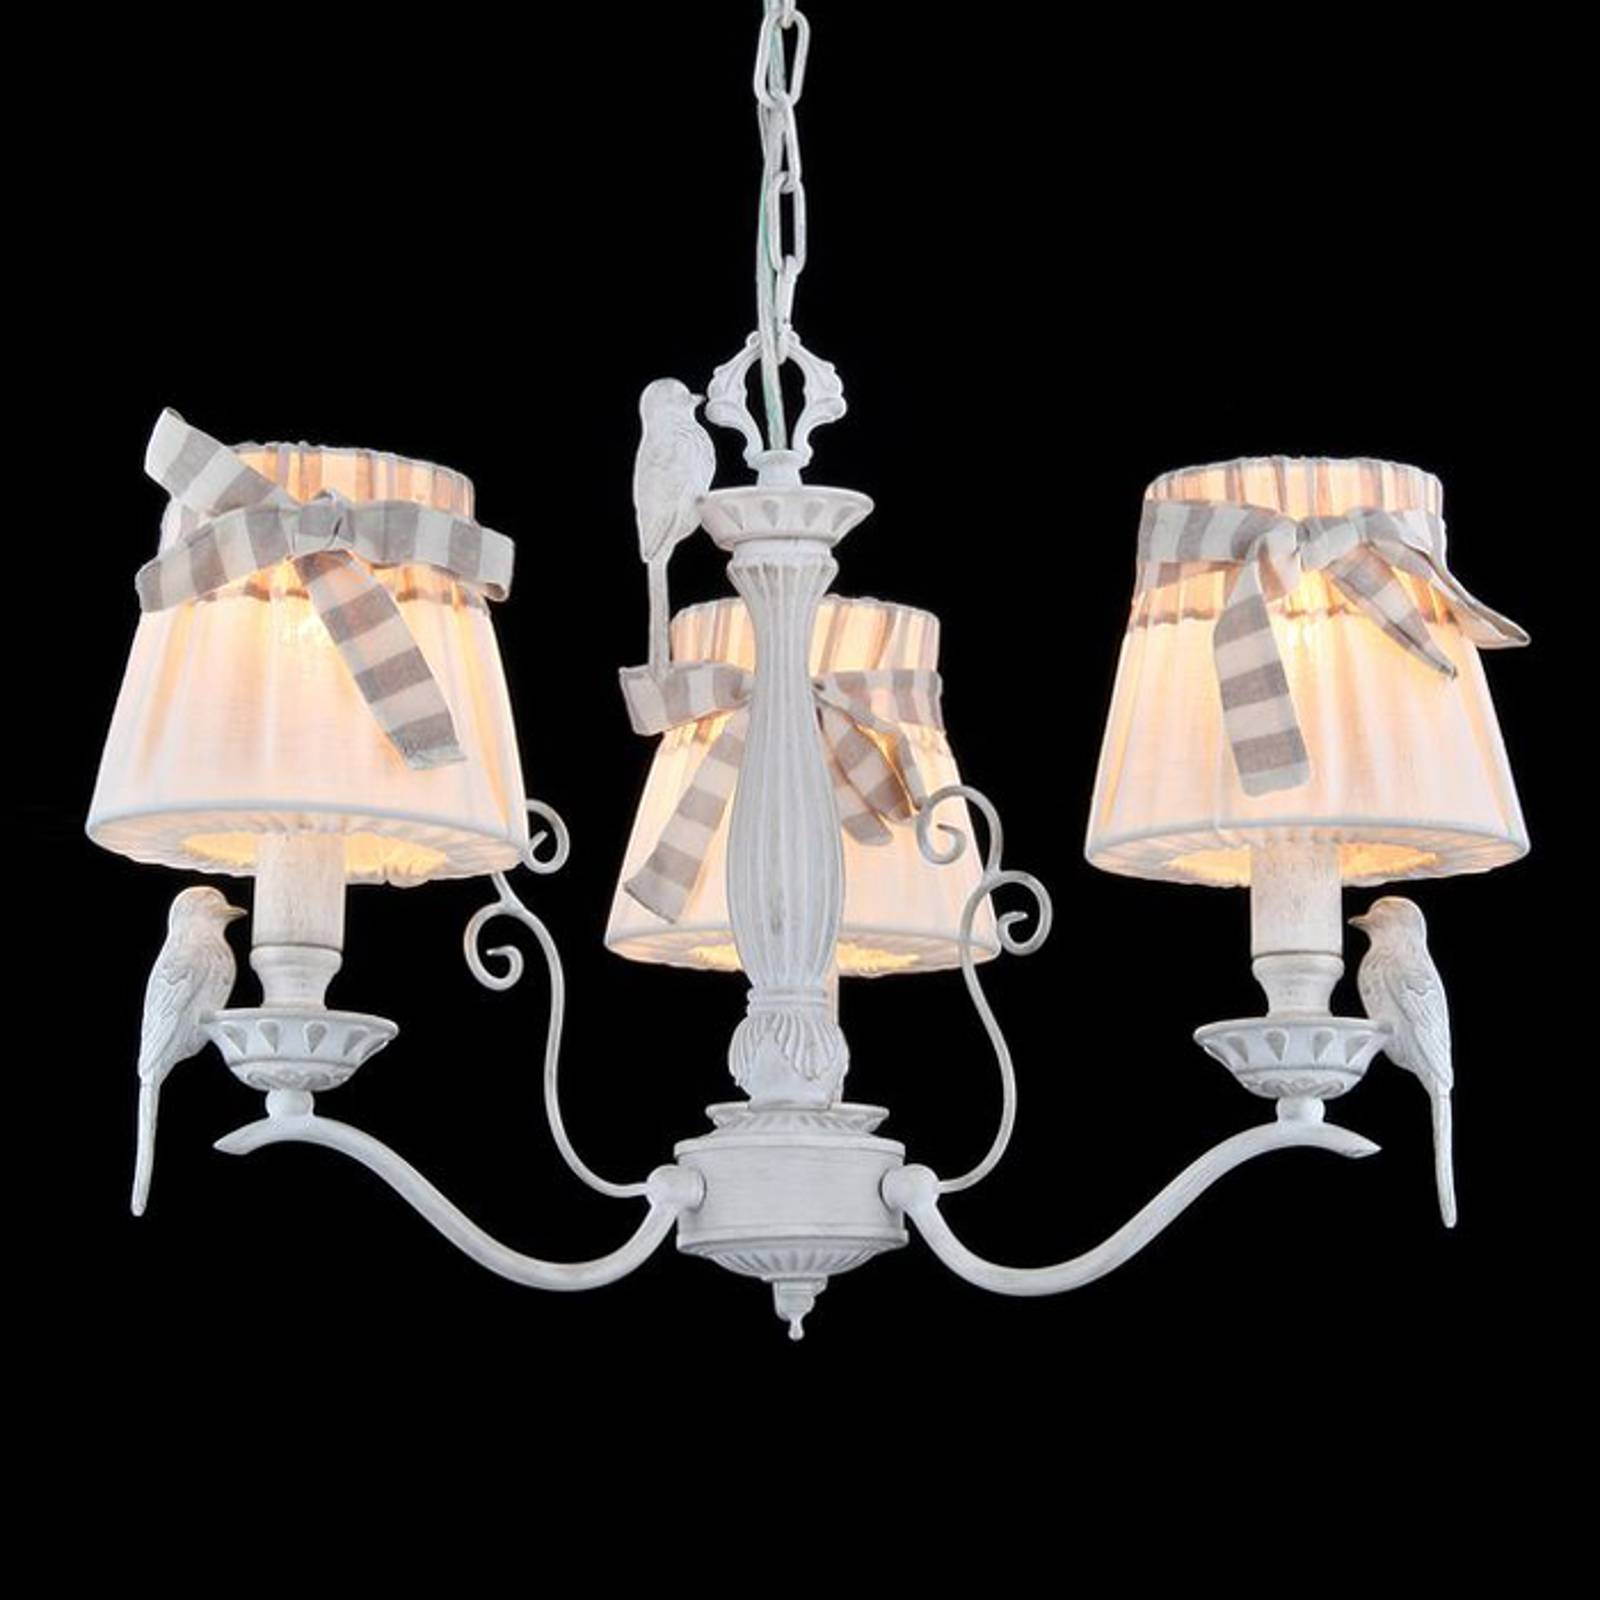 3-bulb hanging lamp Bird with linen lampshades from Maytoni